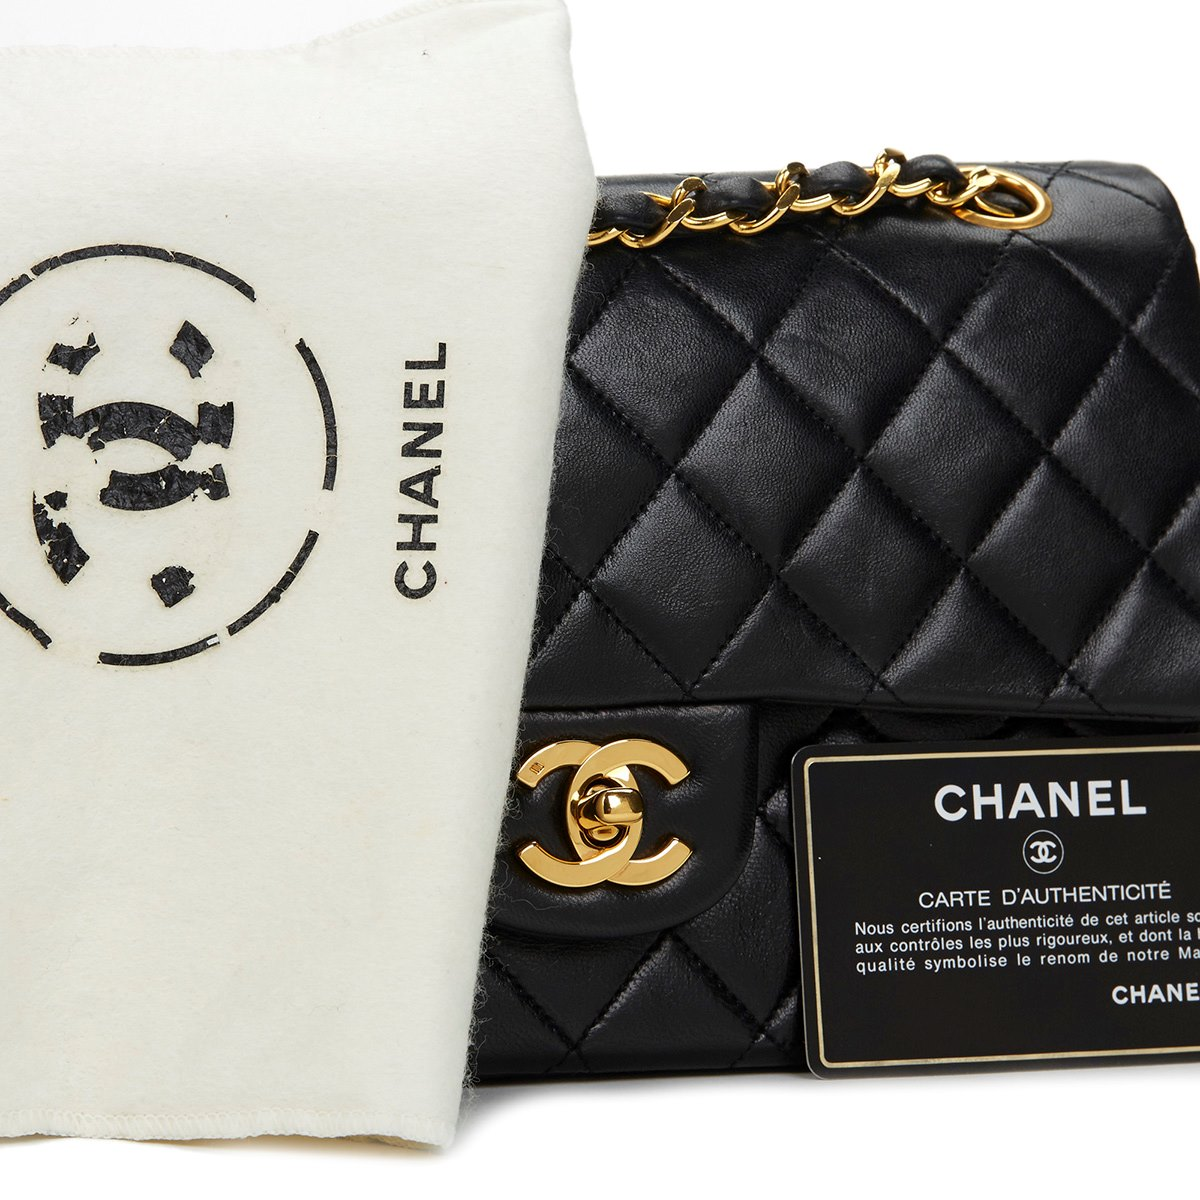 chanel small classic double flap bag 1986 hb480 second hand handbags. Black Bedroom Furniture Sets. Home Design Ideas